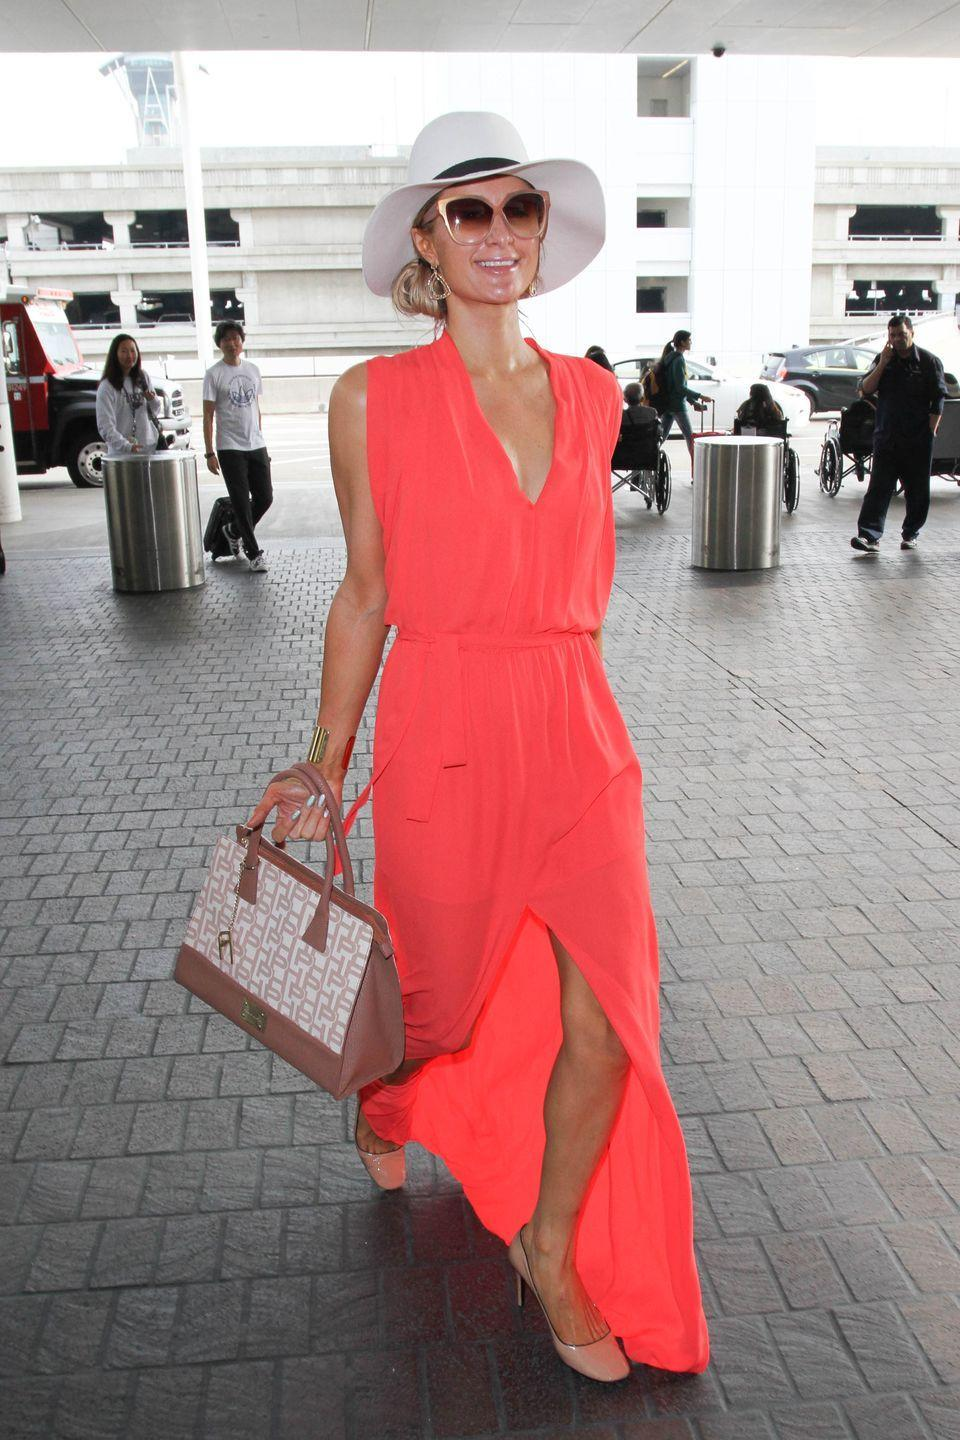 <p><strong>Paris Hilton, 2016: </strong>This time, Paris chose a maxi dress with a slit in the front to give her legs some additional walking room.</p>